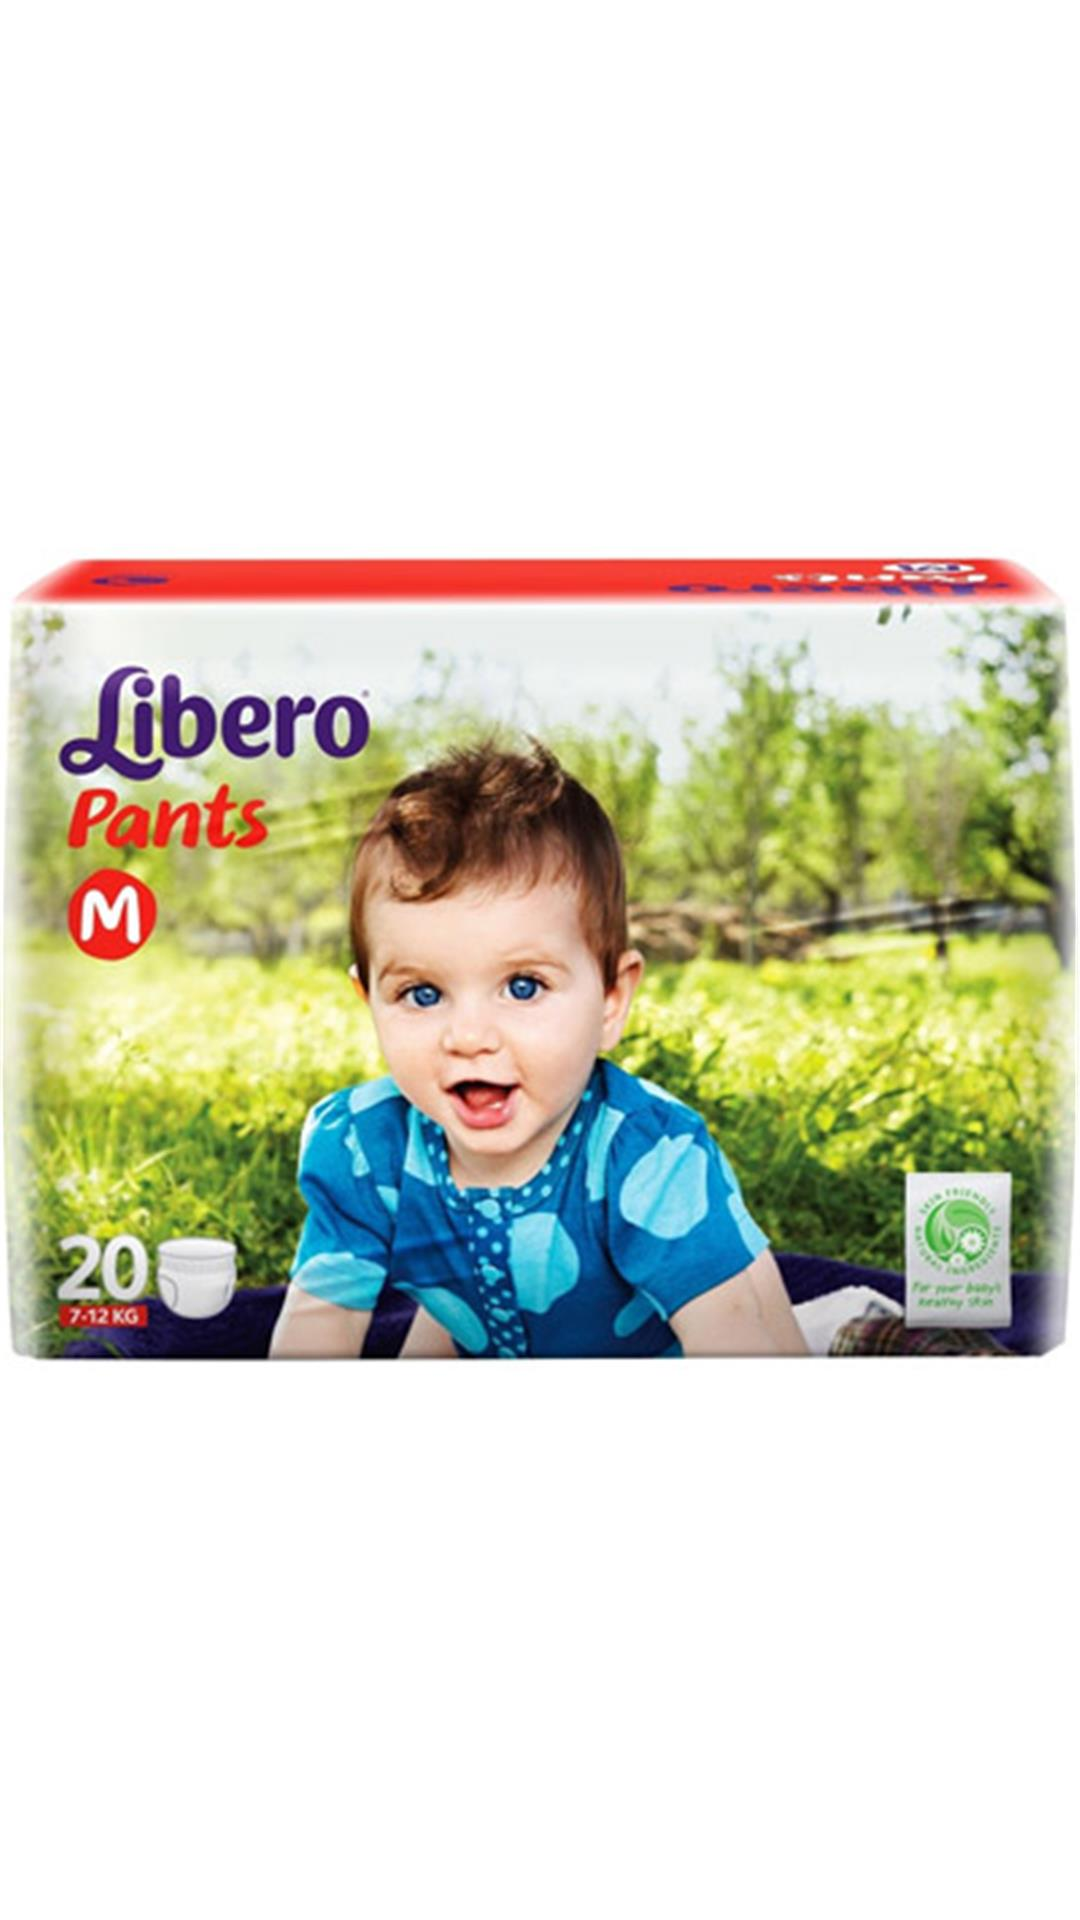 Libero Pants Diaper Medium 20 Pcs(Pack of 2)